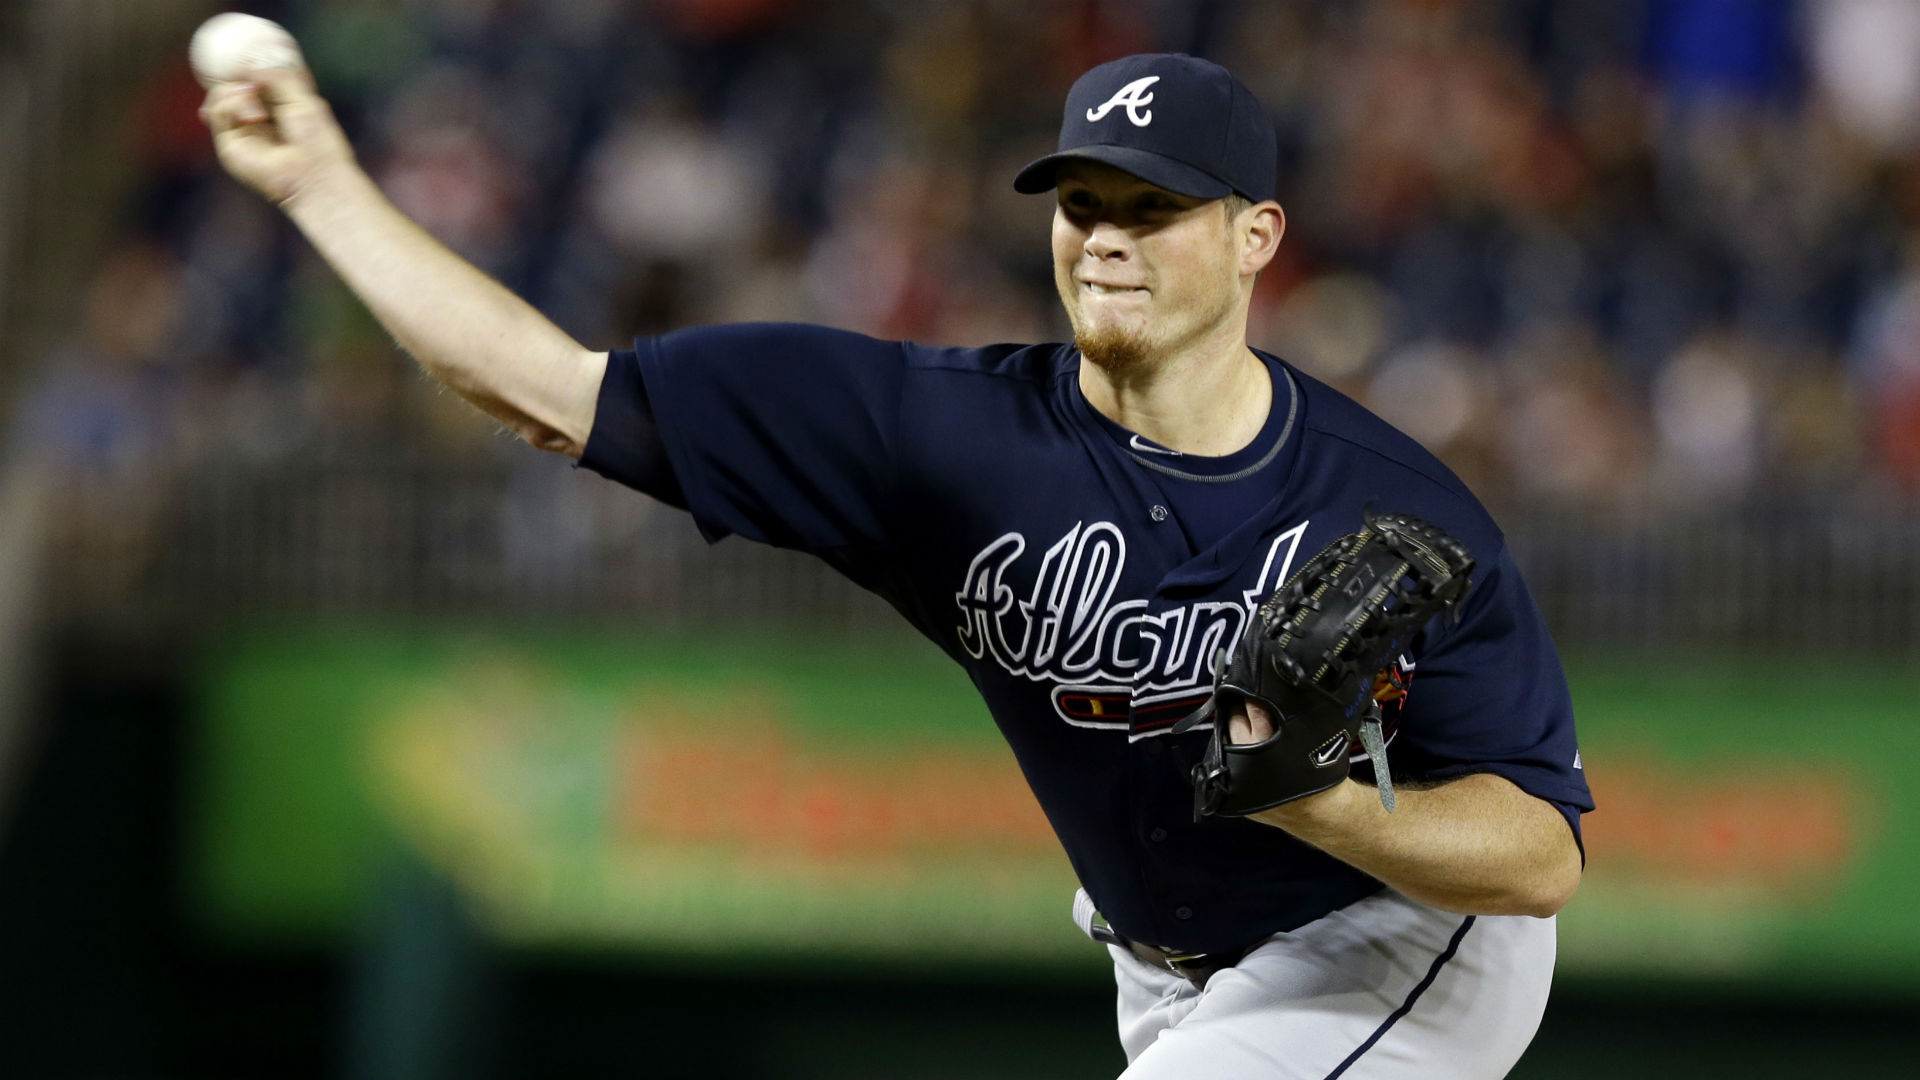 Relief pitcher overview: Competition for Kimbrel?